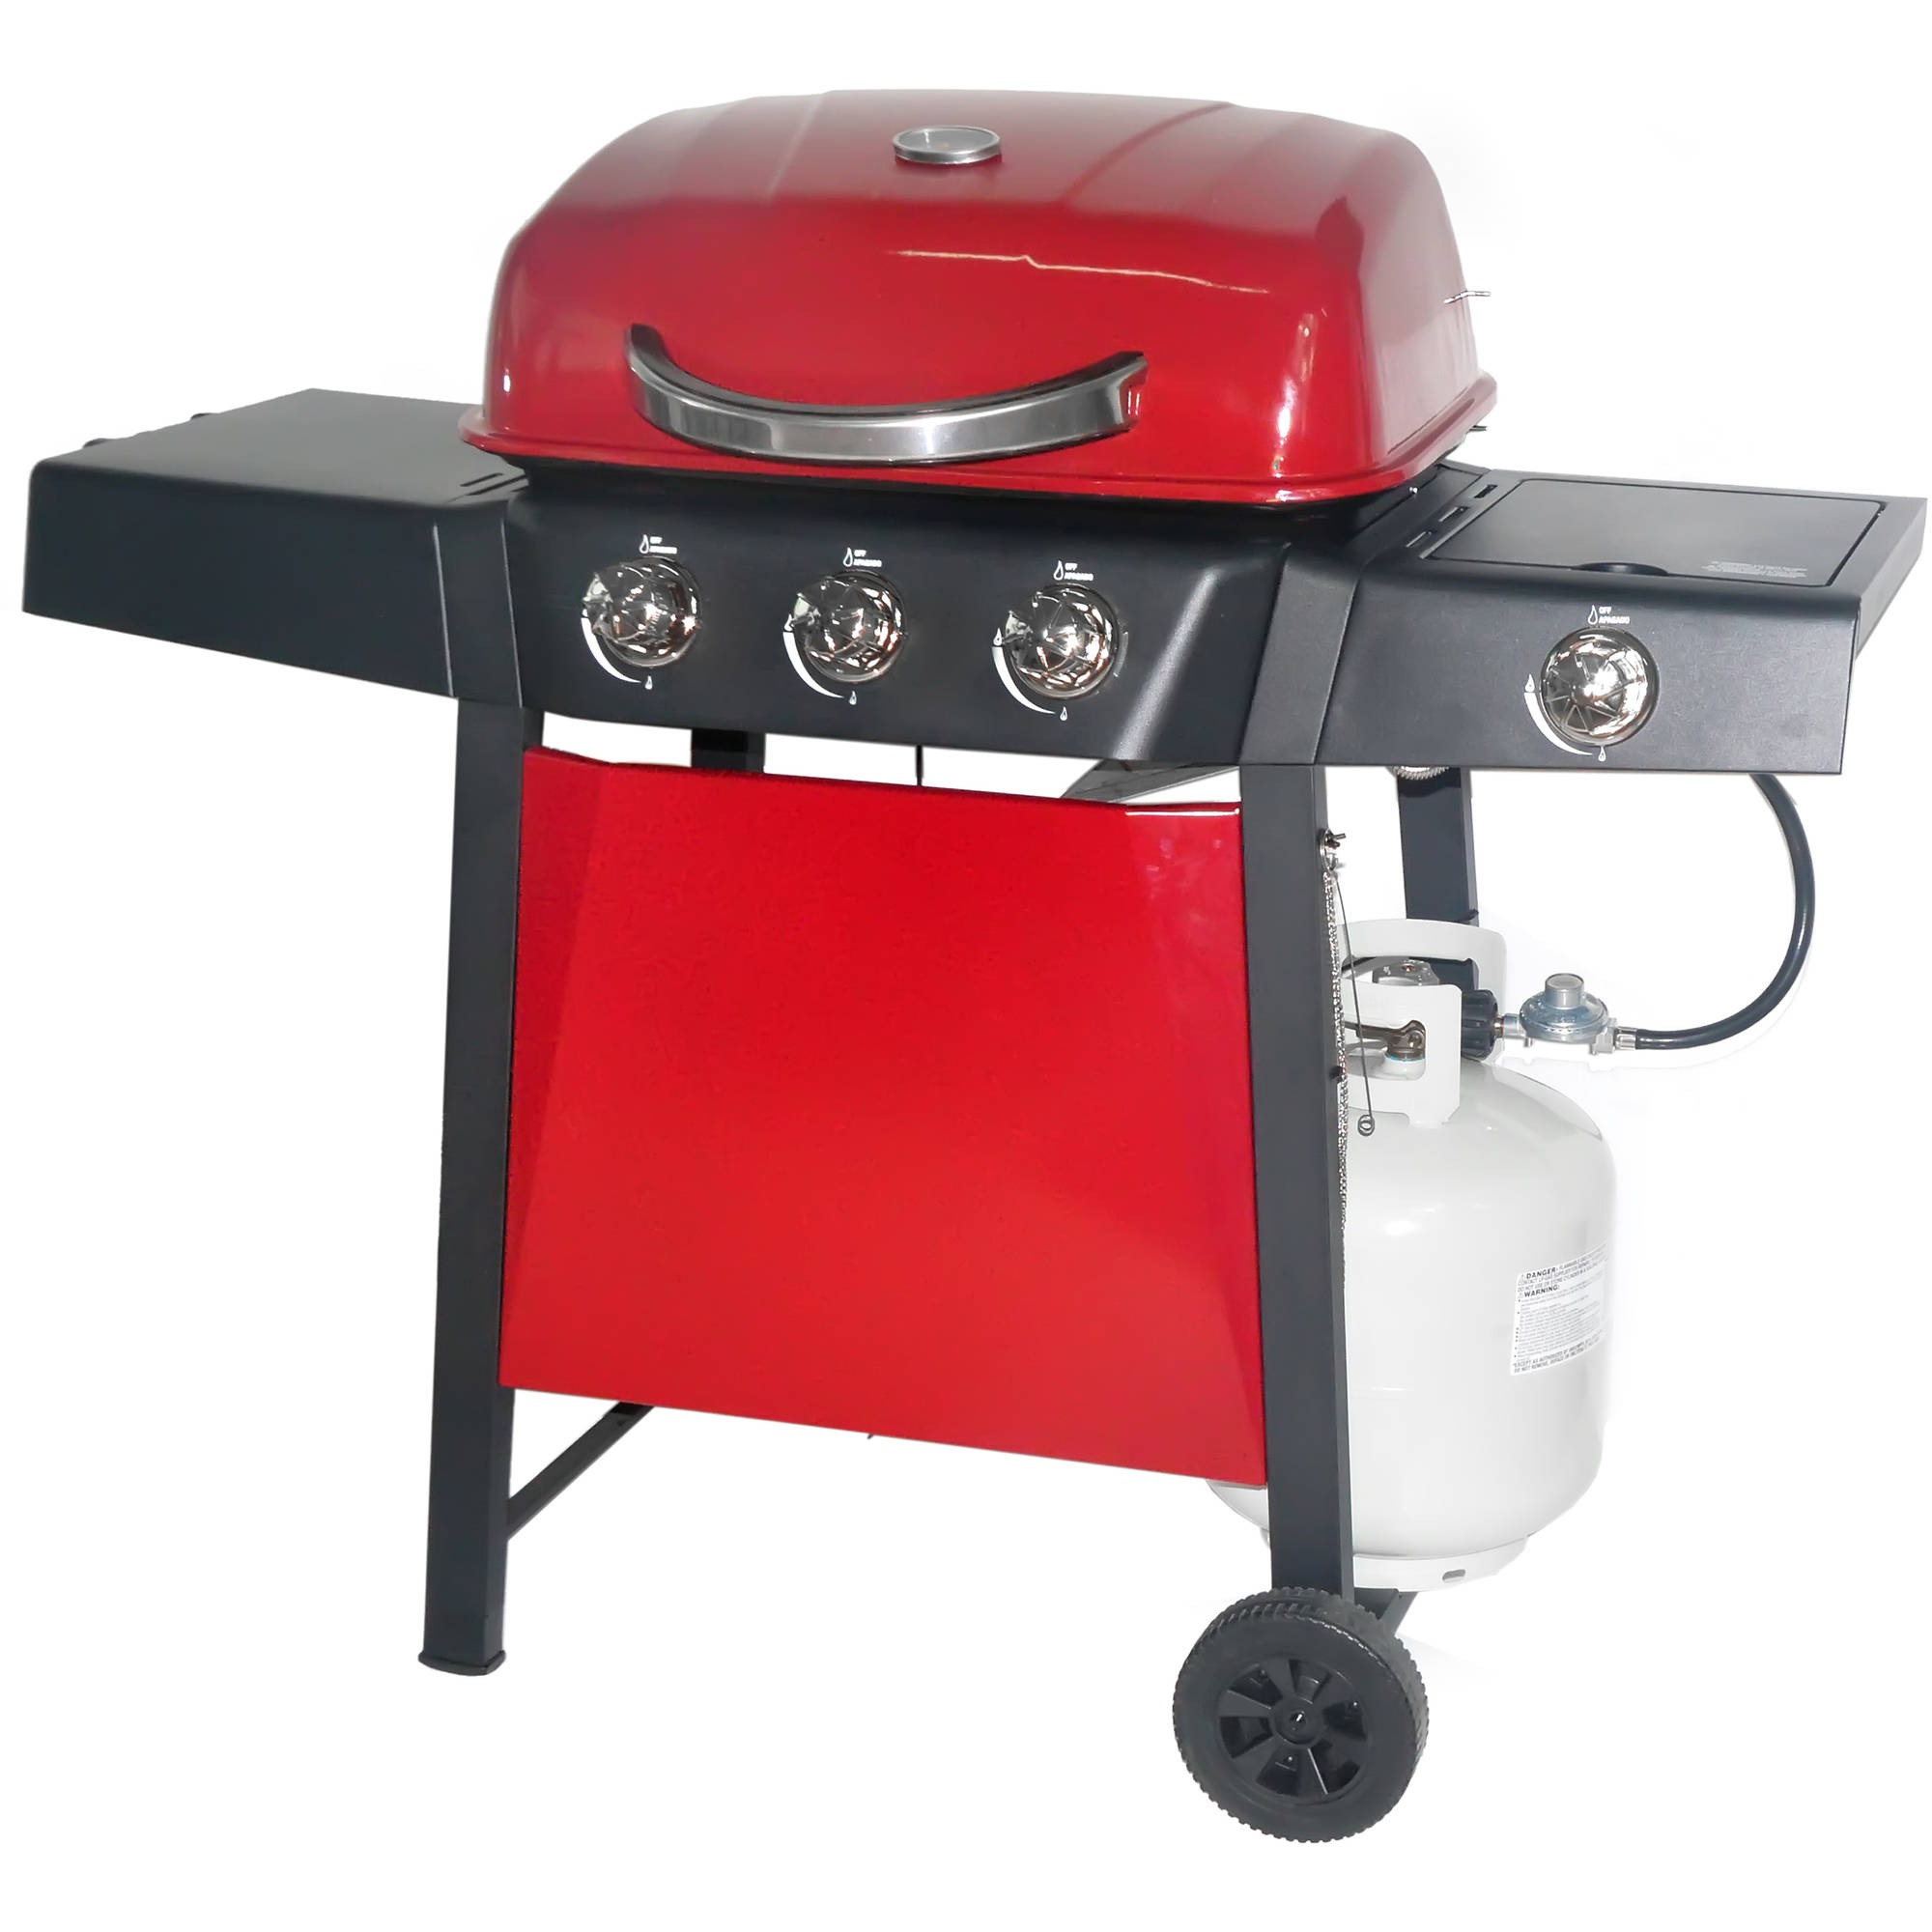 RevoAce 3-Burner LP Gas Grill with Side Burner, Red Sedona